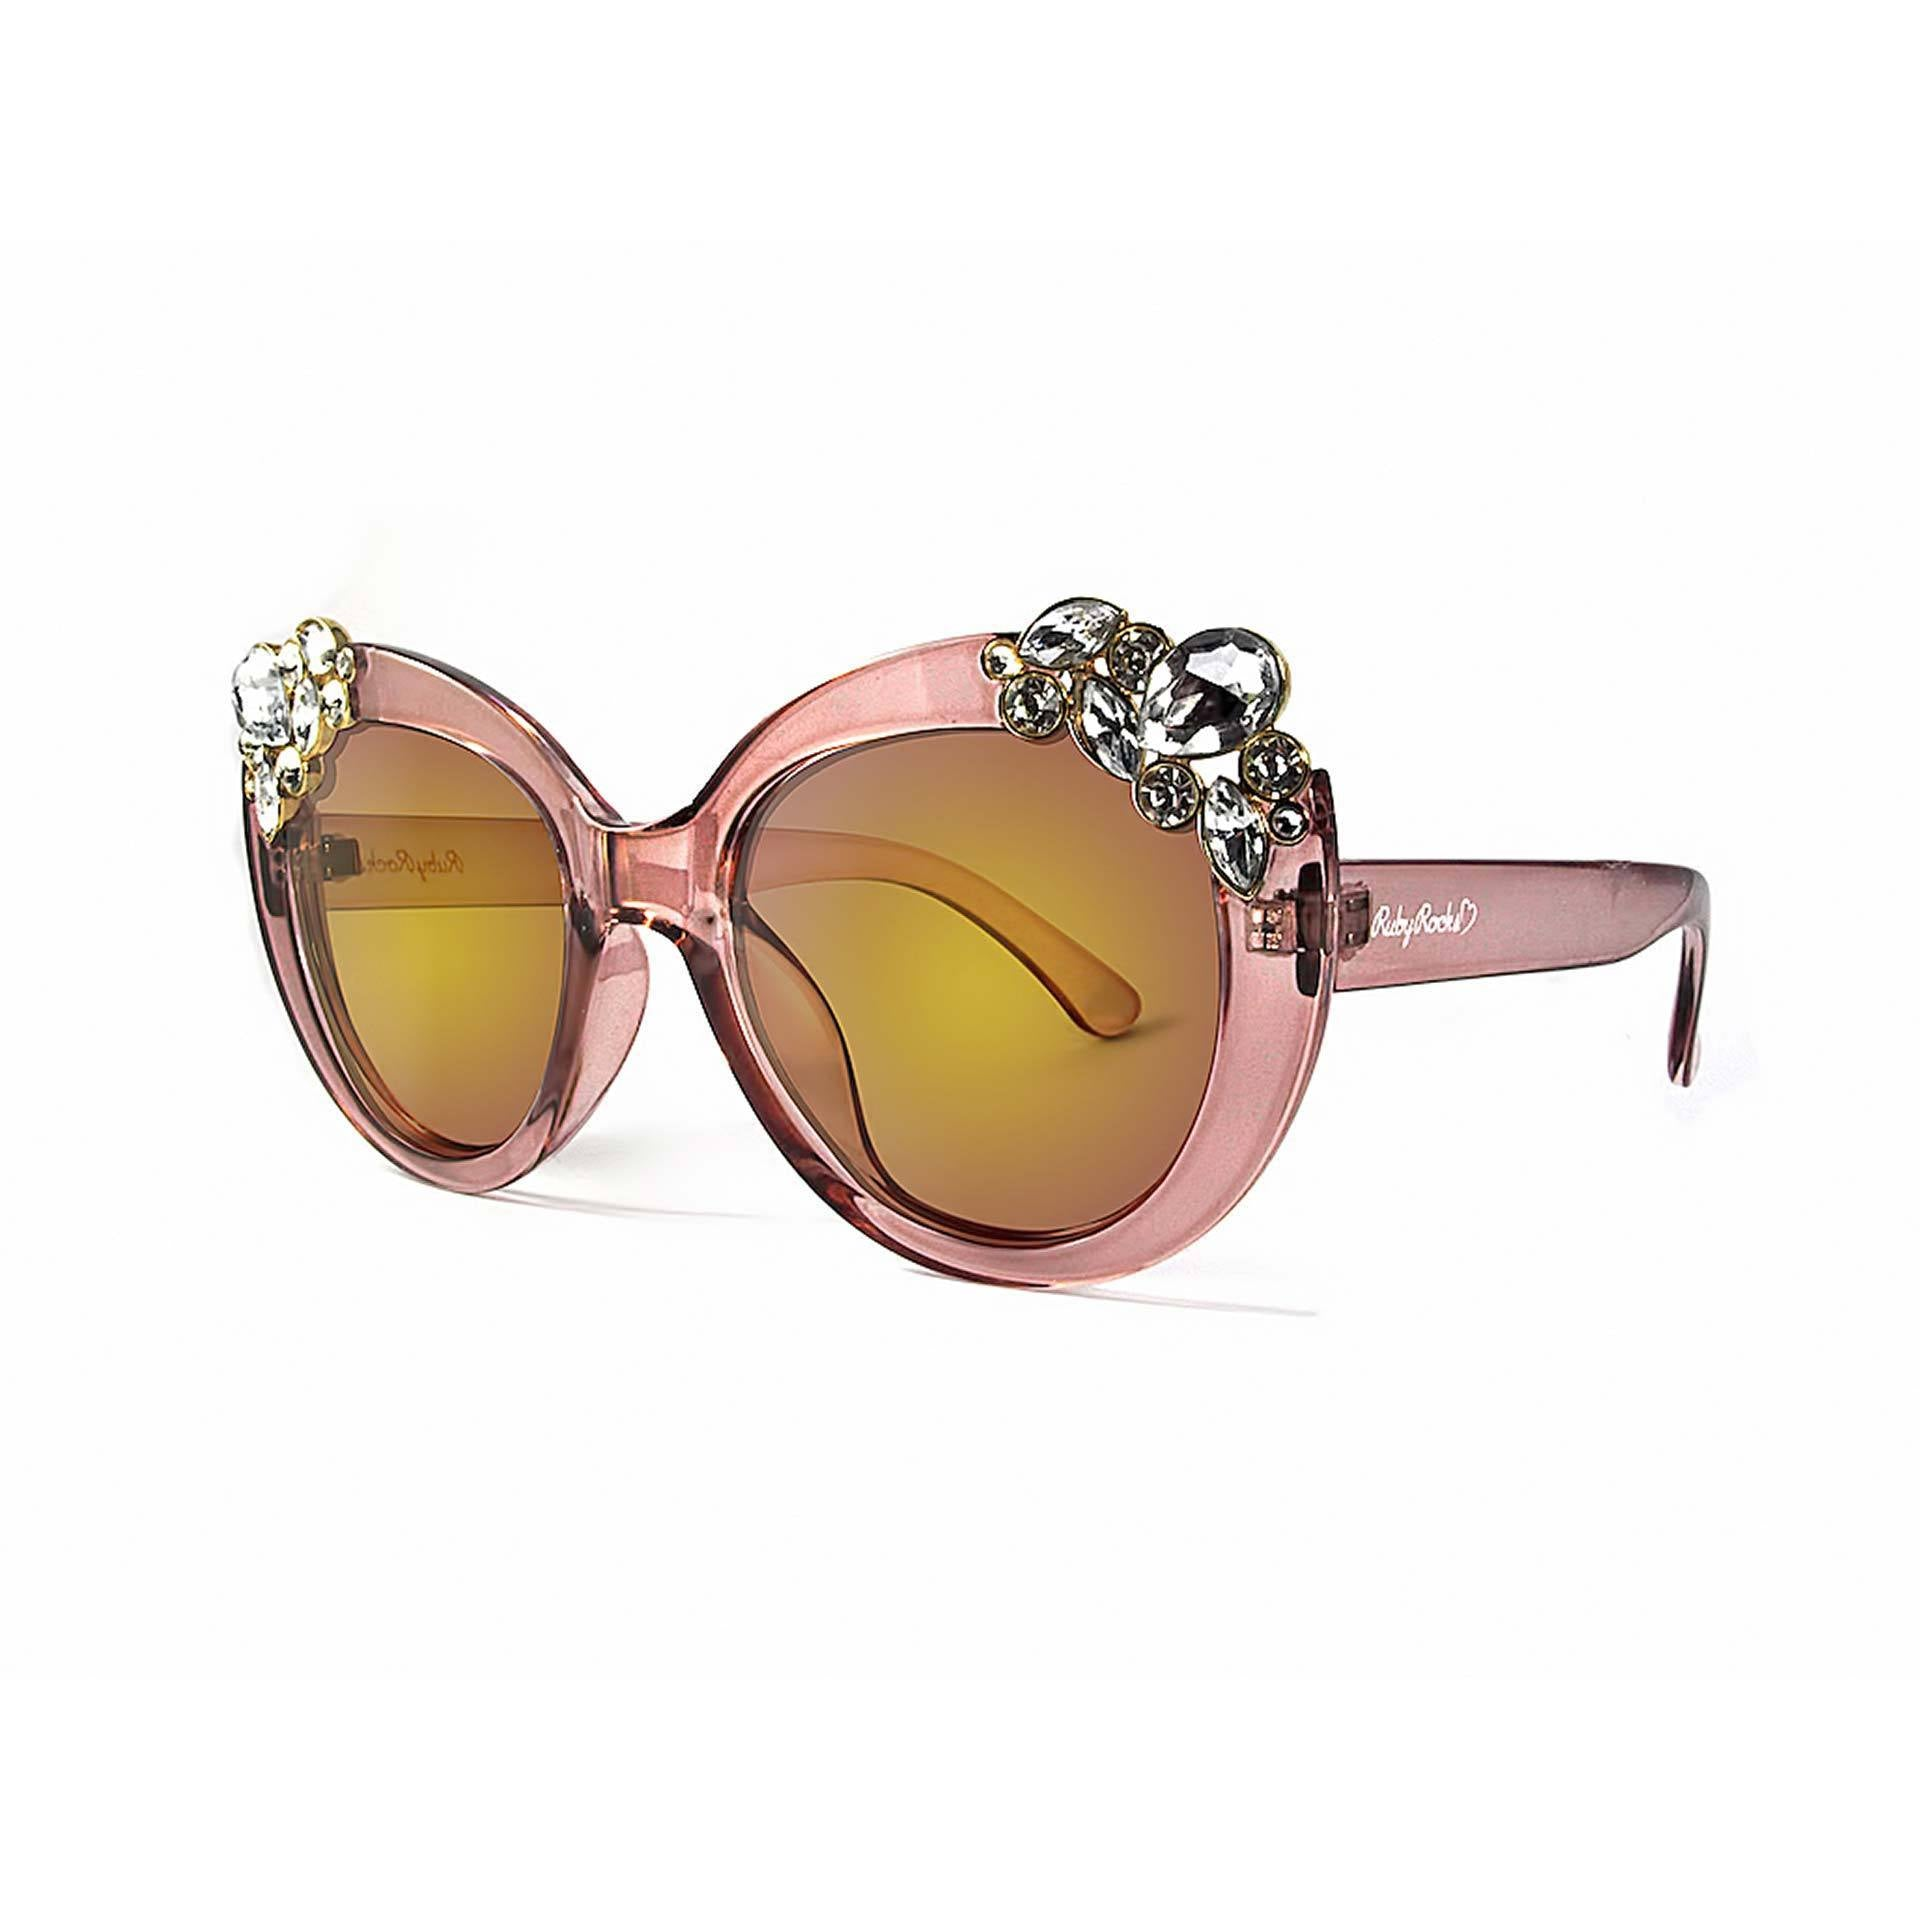 Ladies 'Dubai' Gem Detail Sunglasses In Crystal Pink